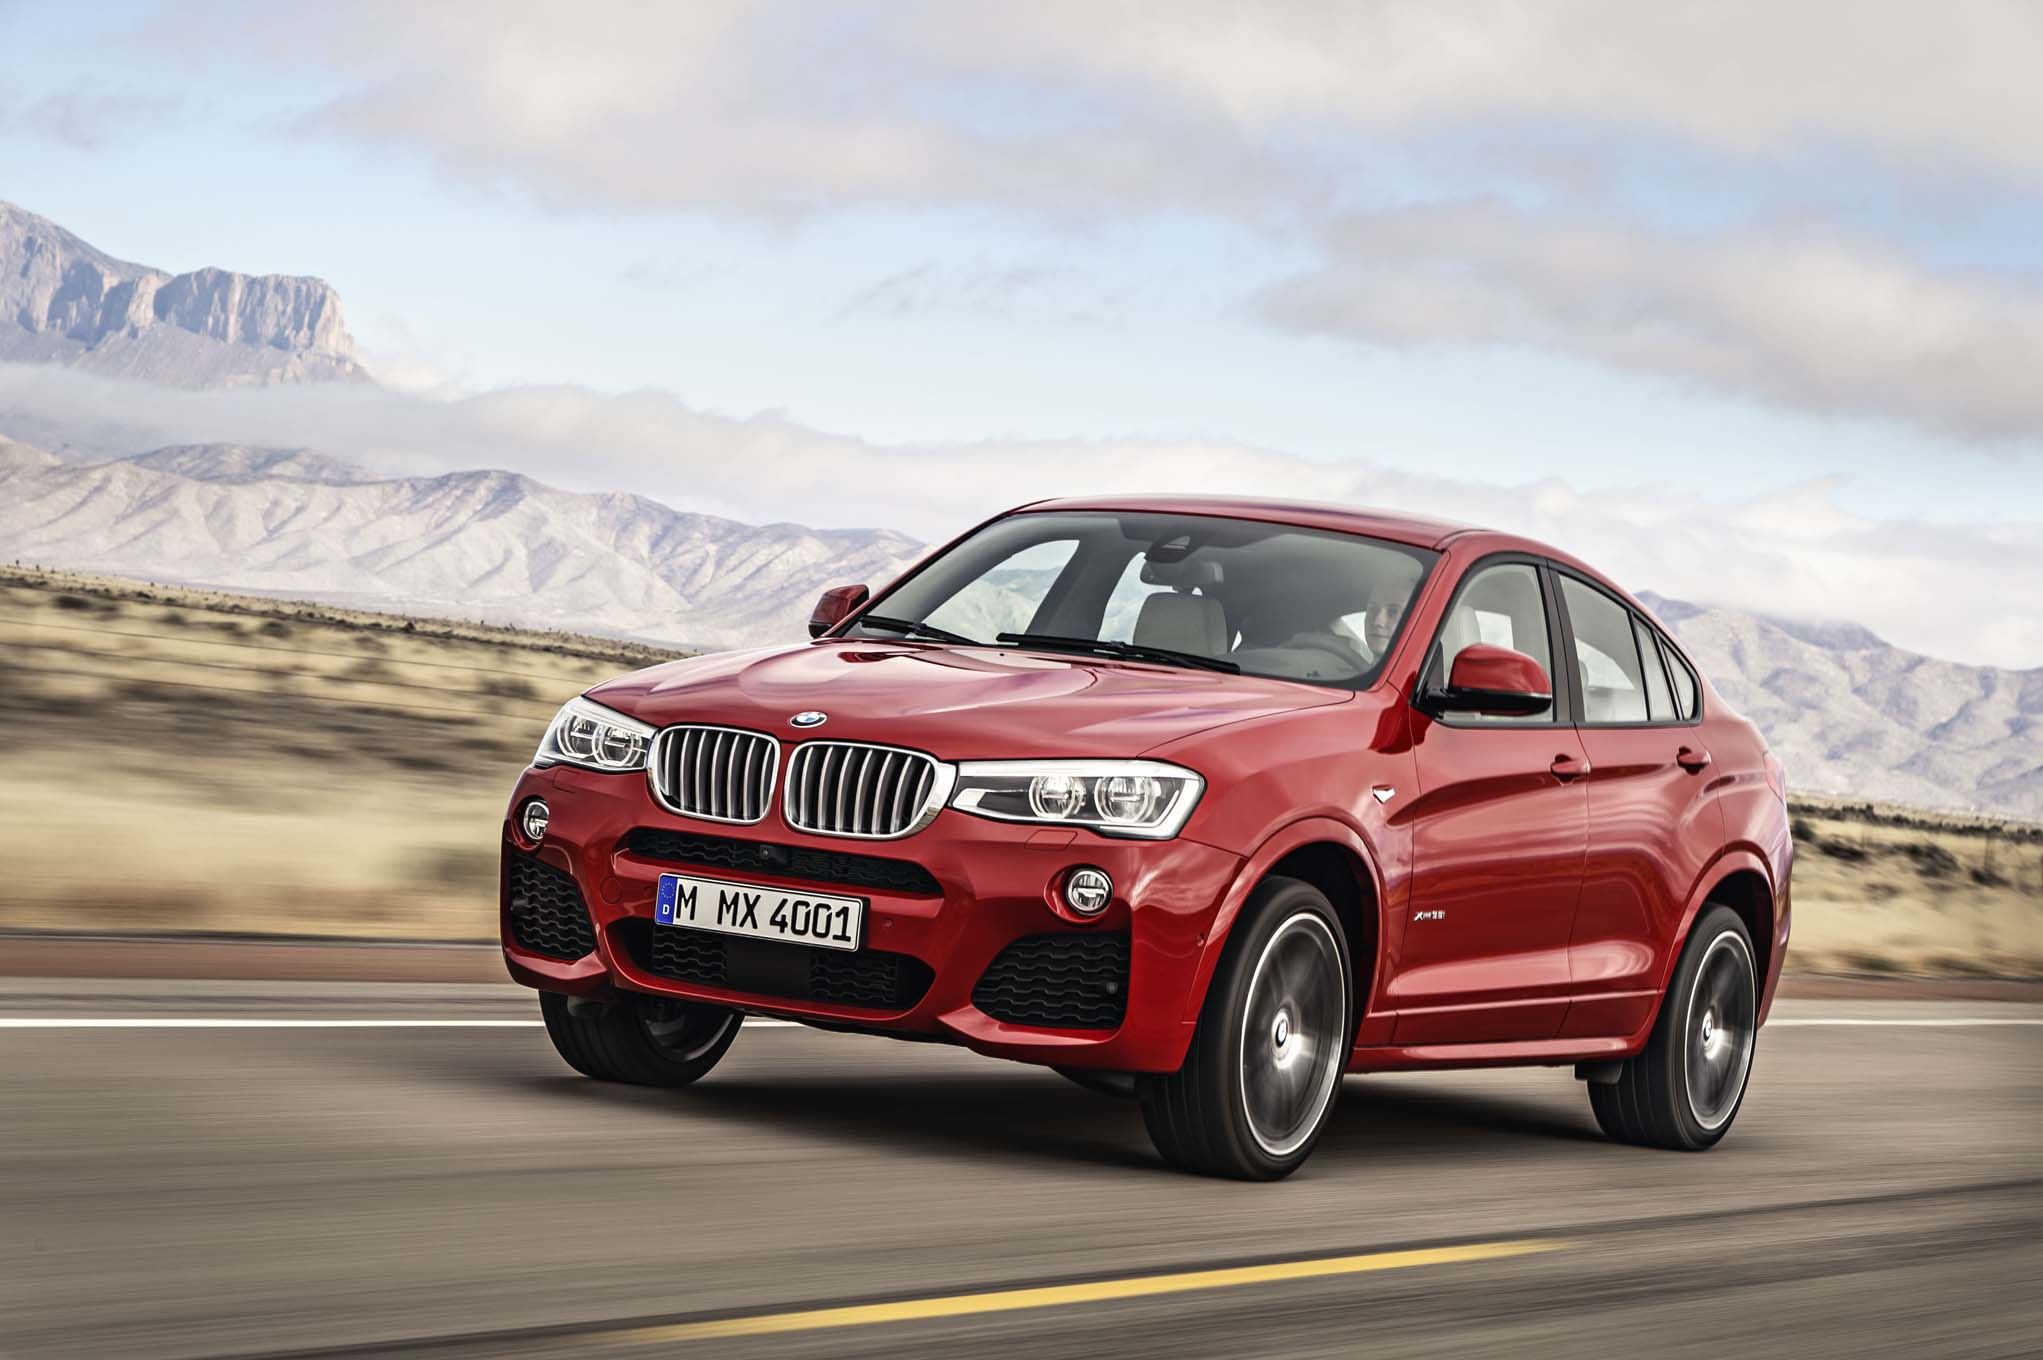 2015 Bmw X4 Test Ride (Photo 13 of 13)